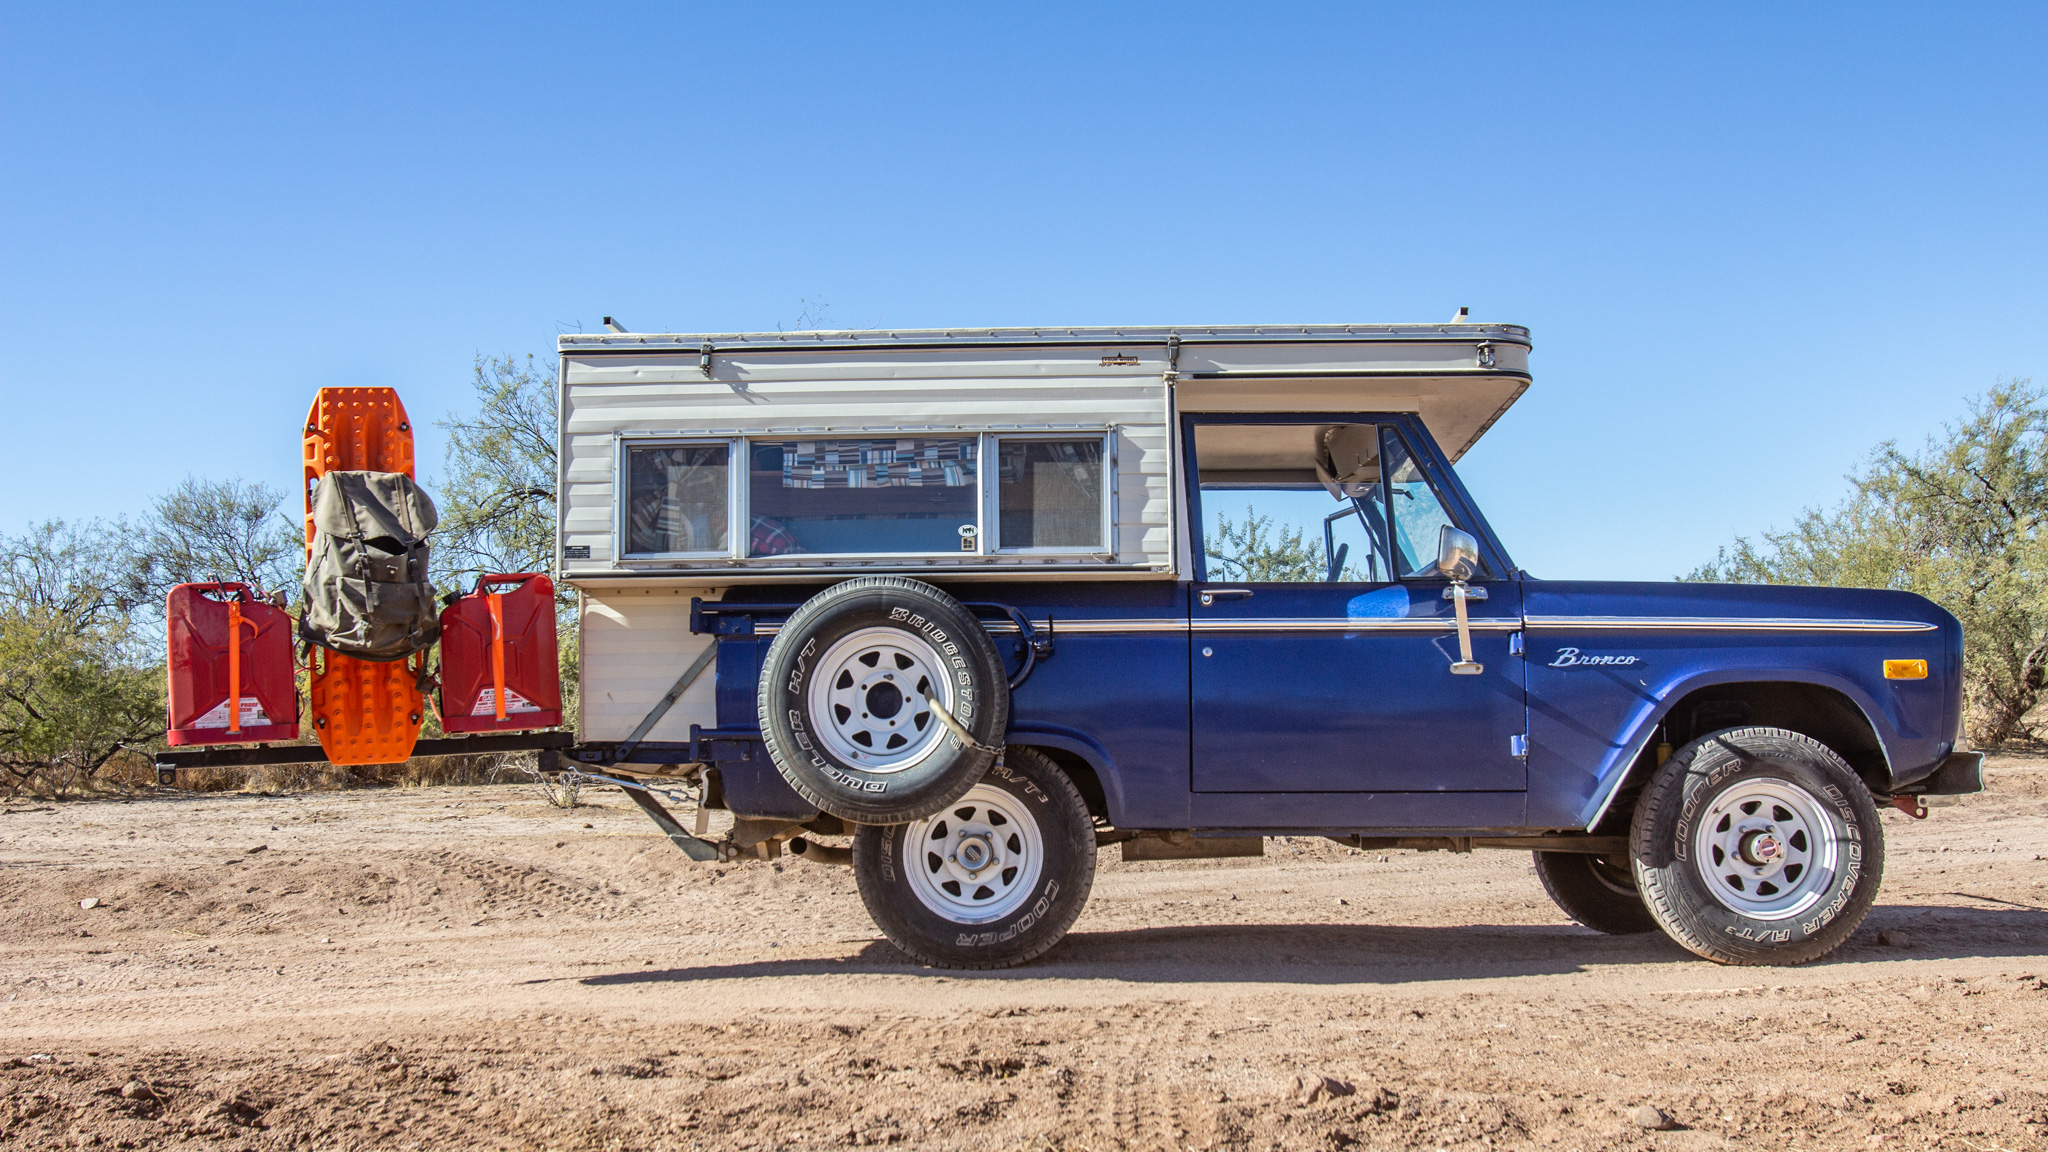 1976 Ford Bronco With a Four Wheel Campers Pop-Up on Four Wheeler's 2020 Overland Adventure